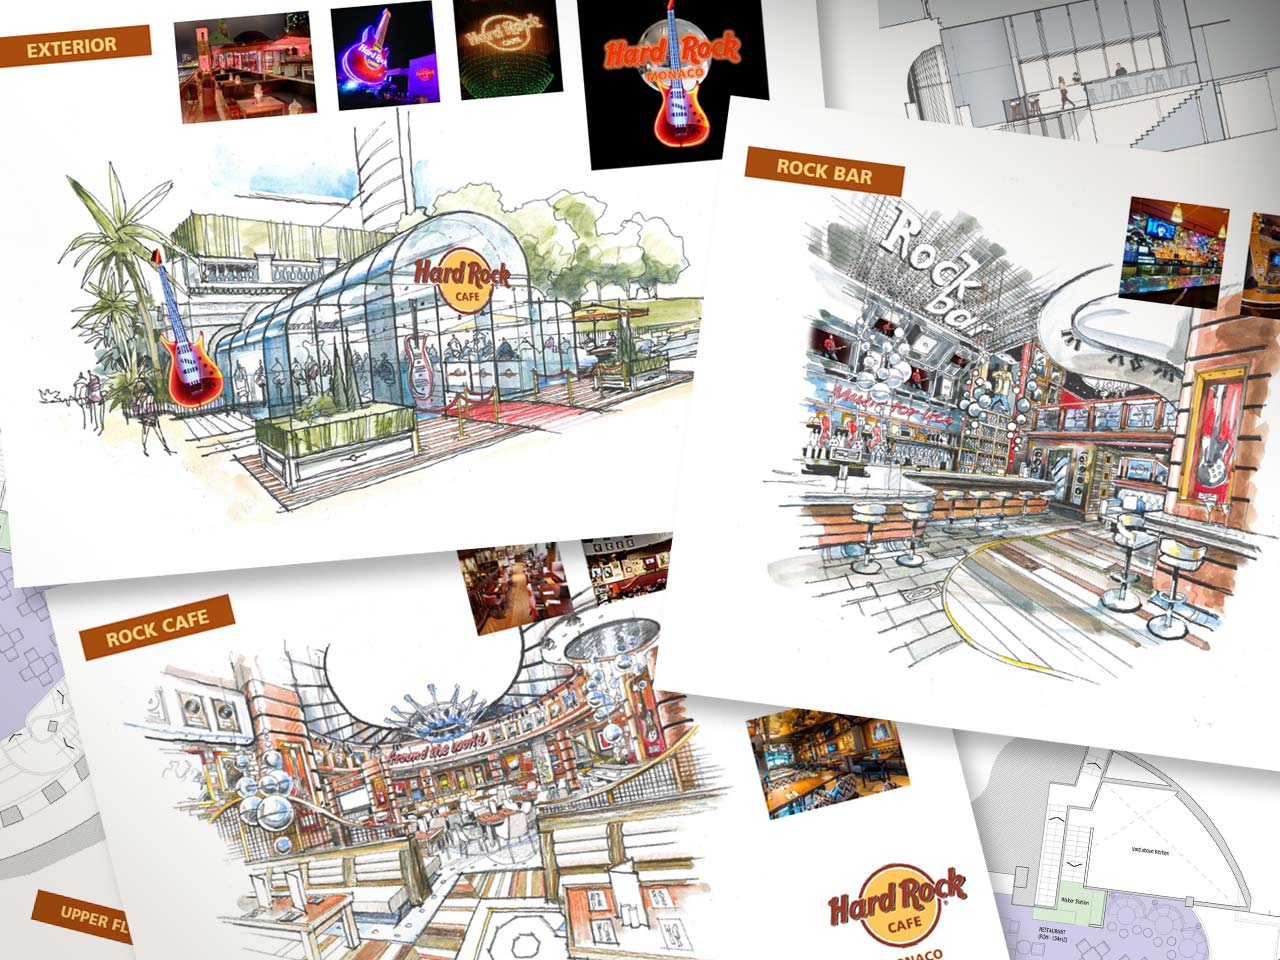 Hard Rock Café initial interior and exterior concept drawings